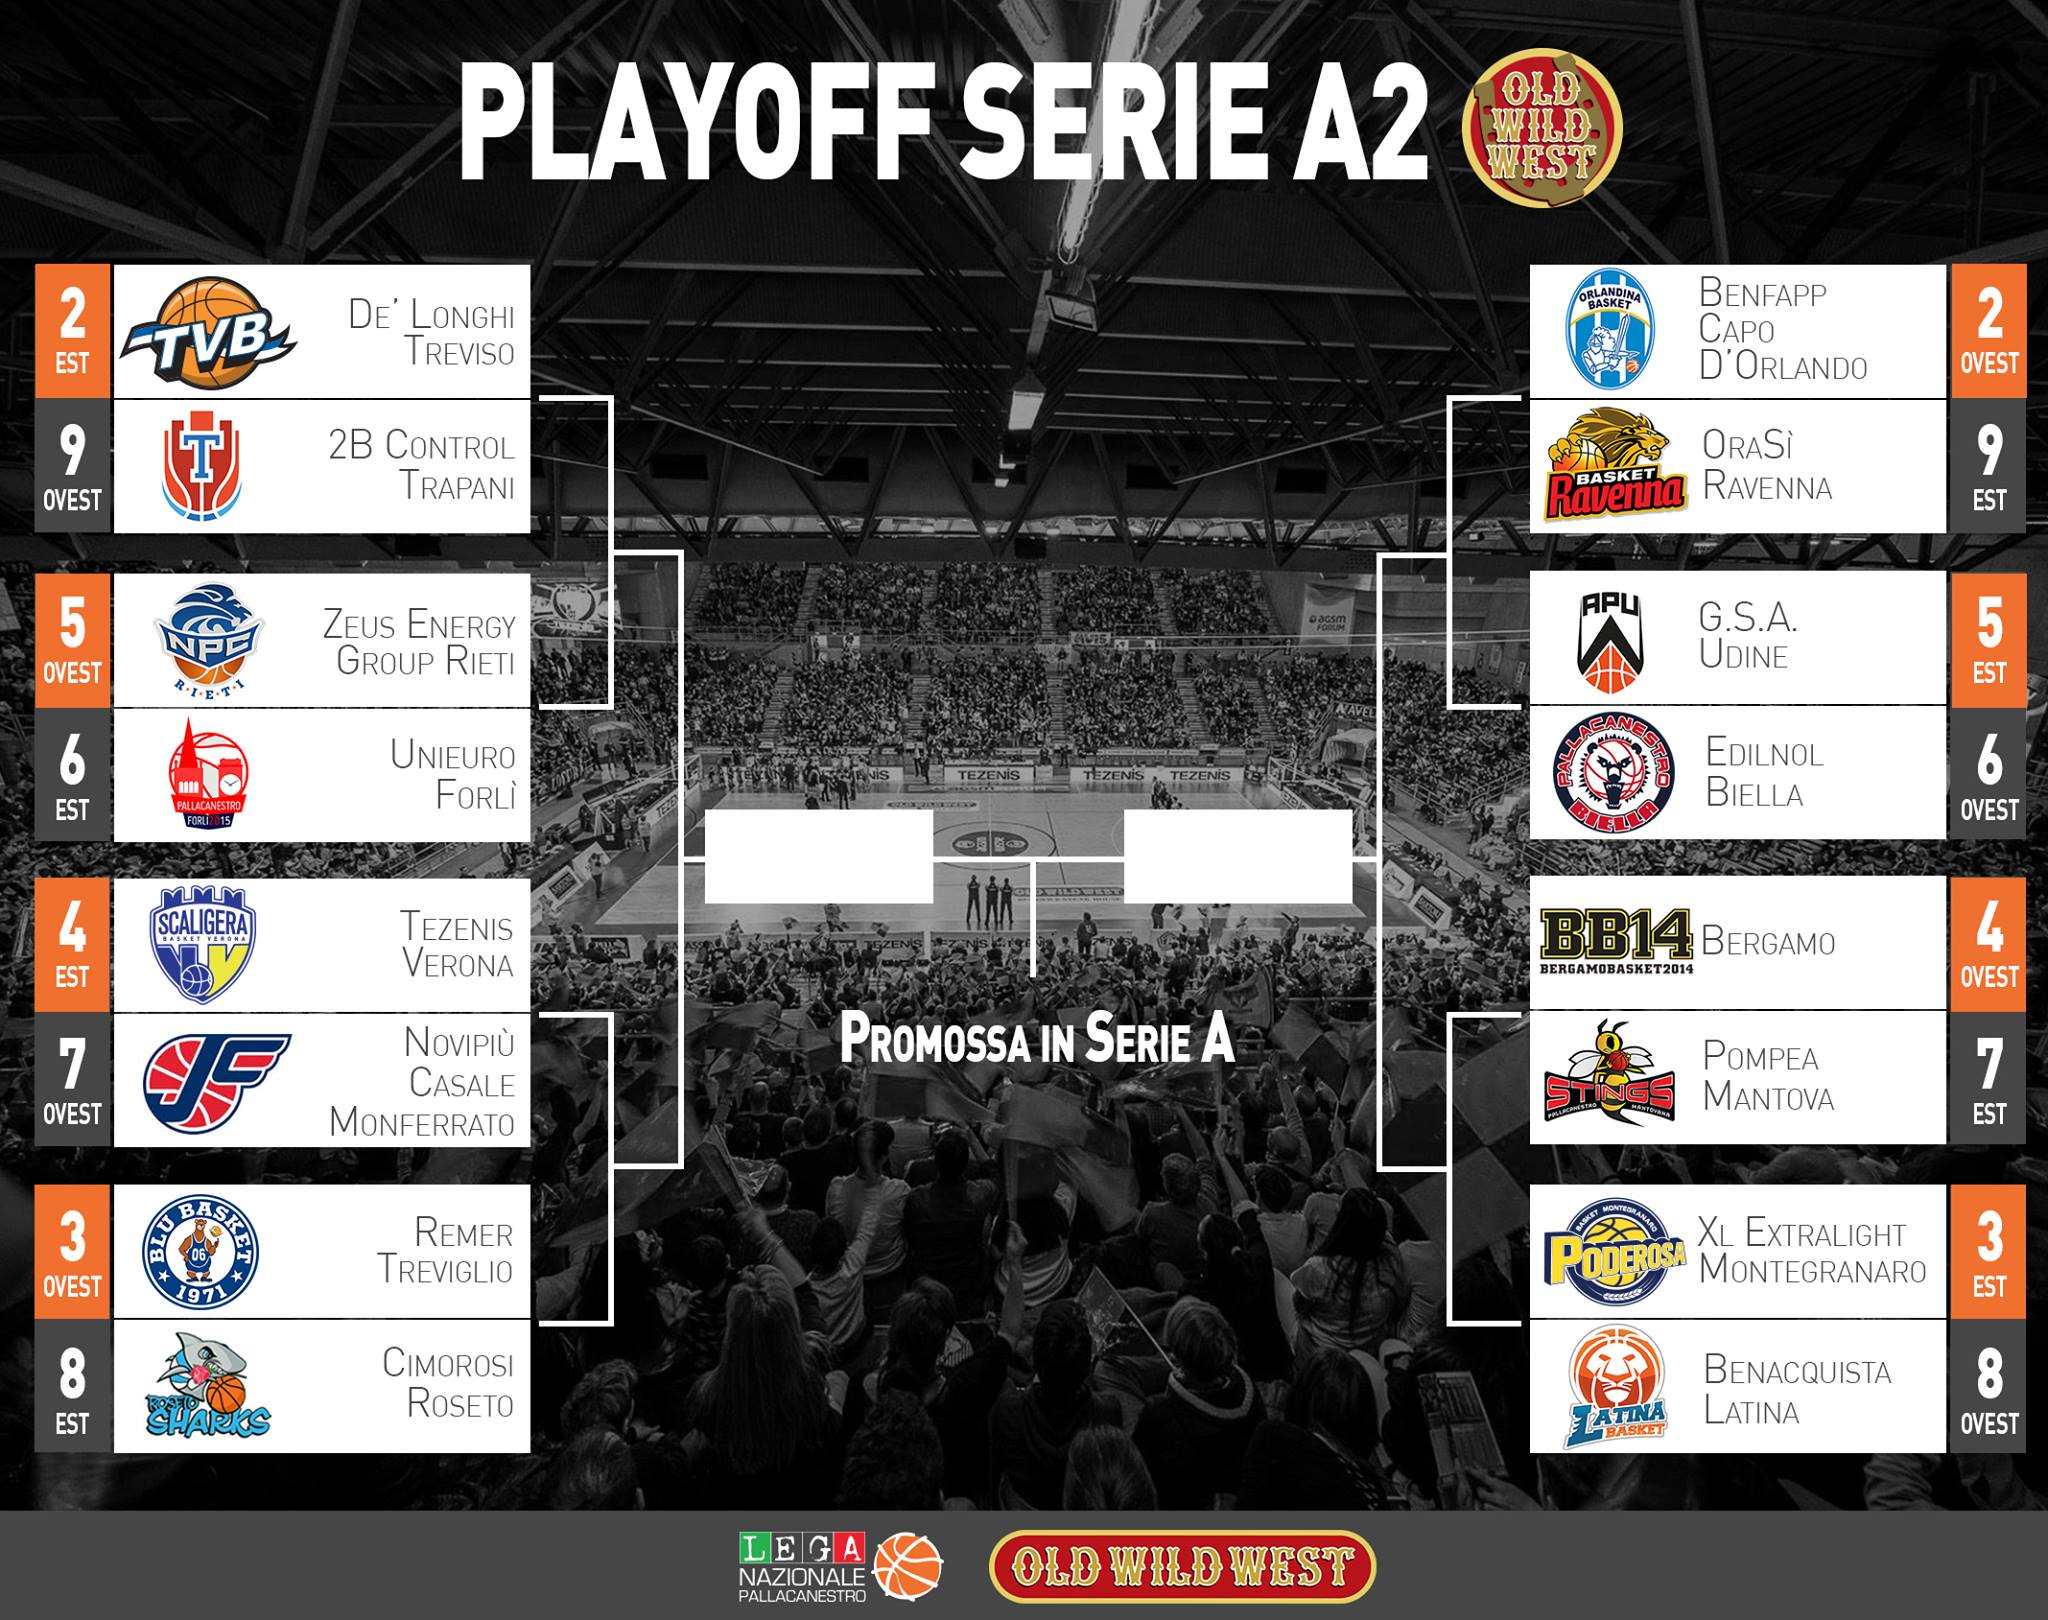 Calendario Play Off Basket A2.Serie A2 Old Wild West Il Programma Dei Playoff